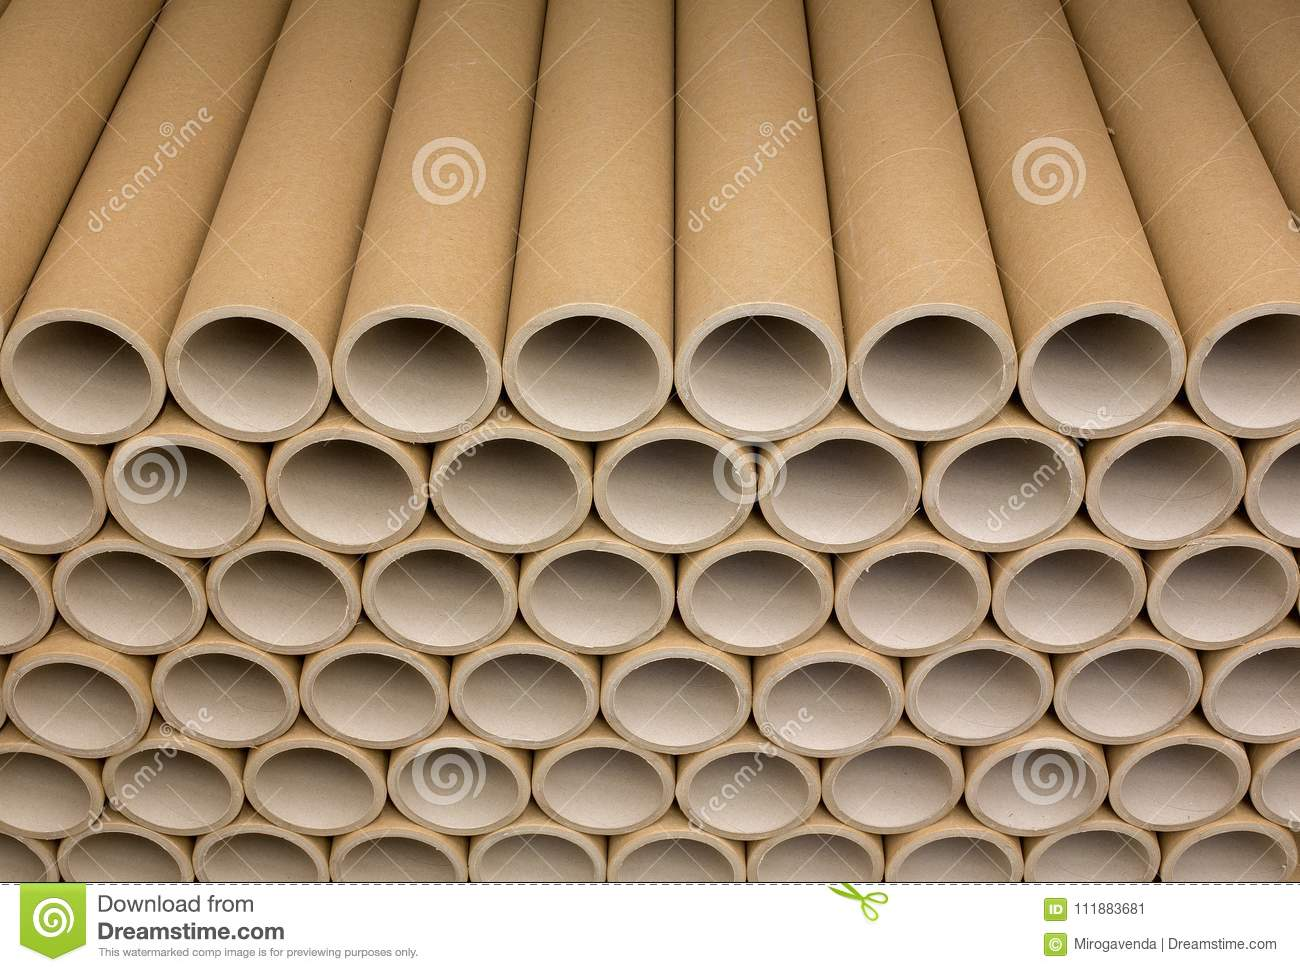 A bunch of brown industrial paper core. A lot of paper cores or paper tubes.